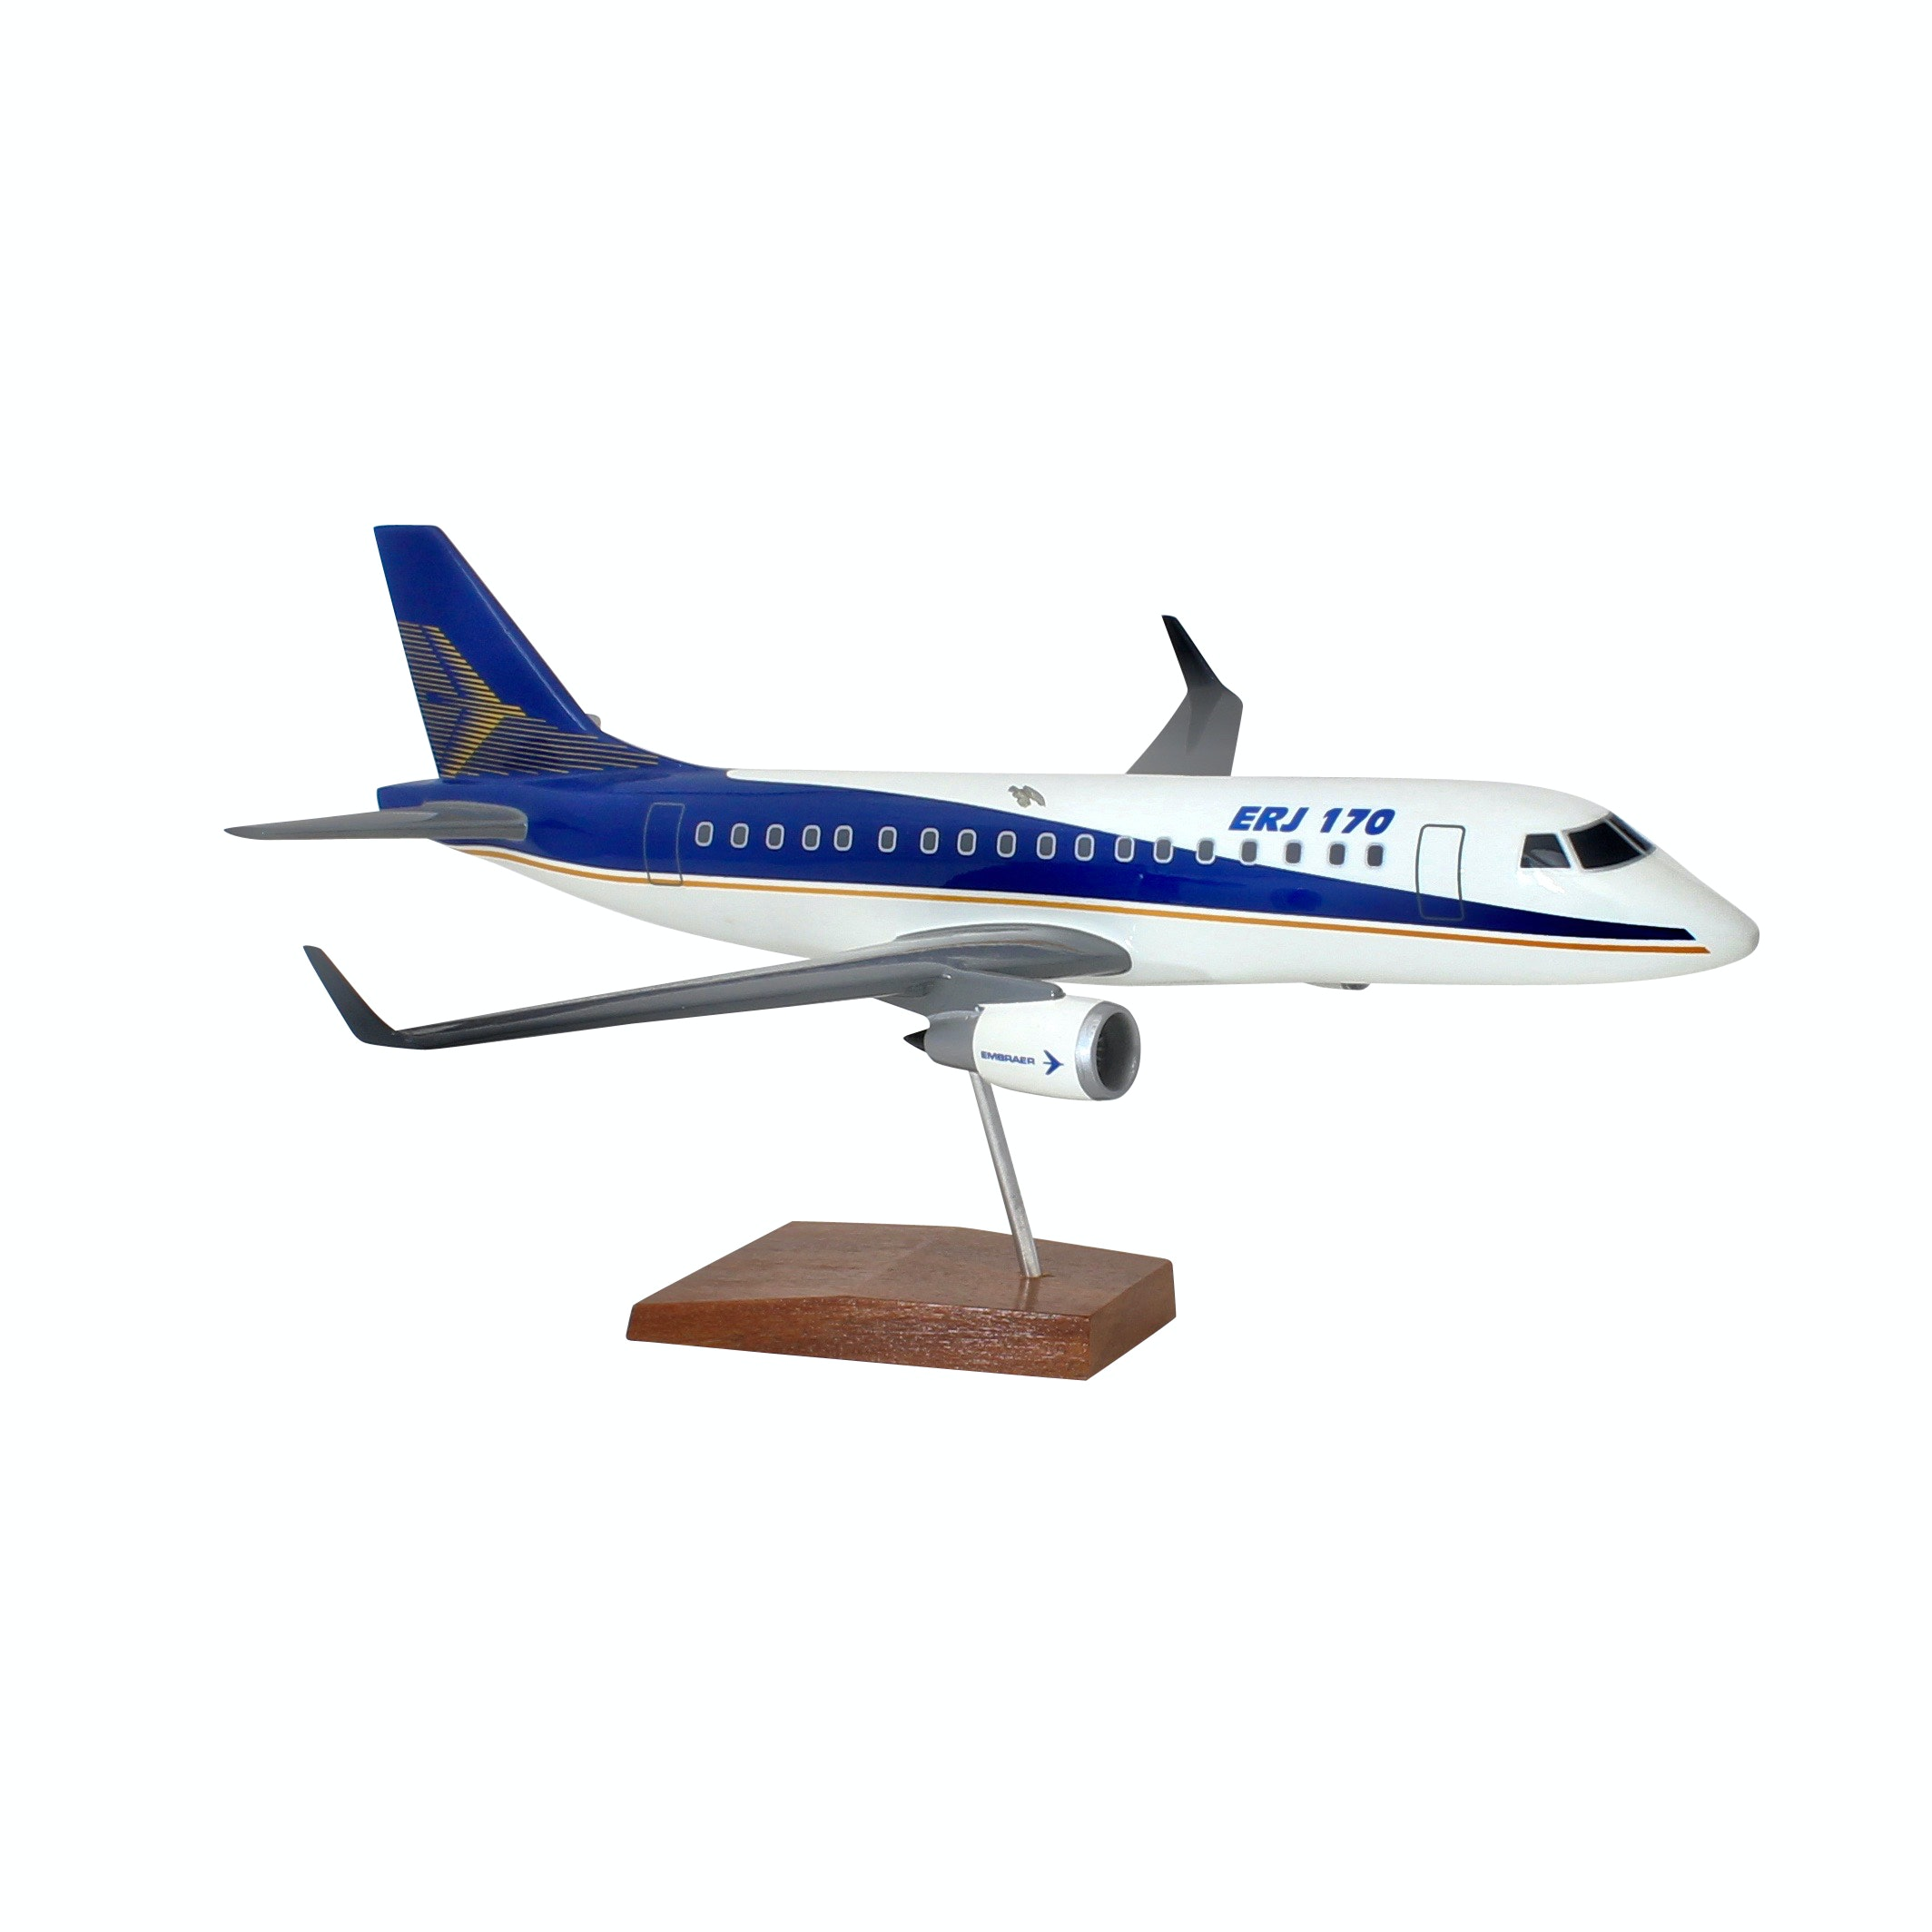 Embraer ERJ 170 Jet Model